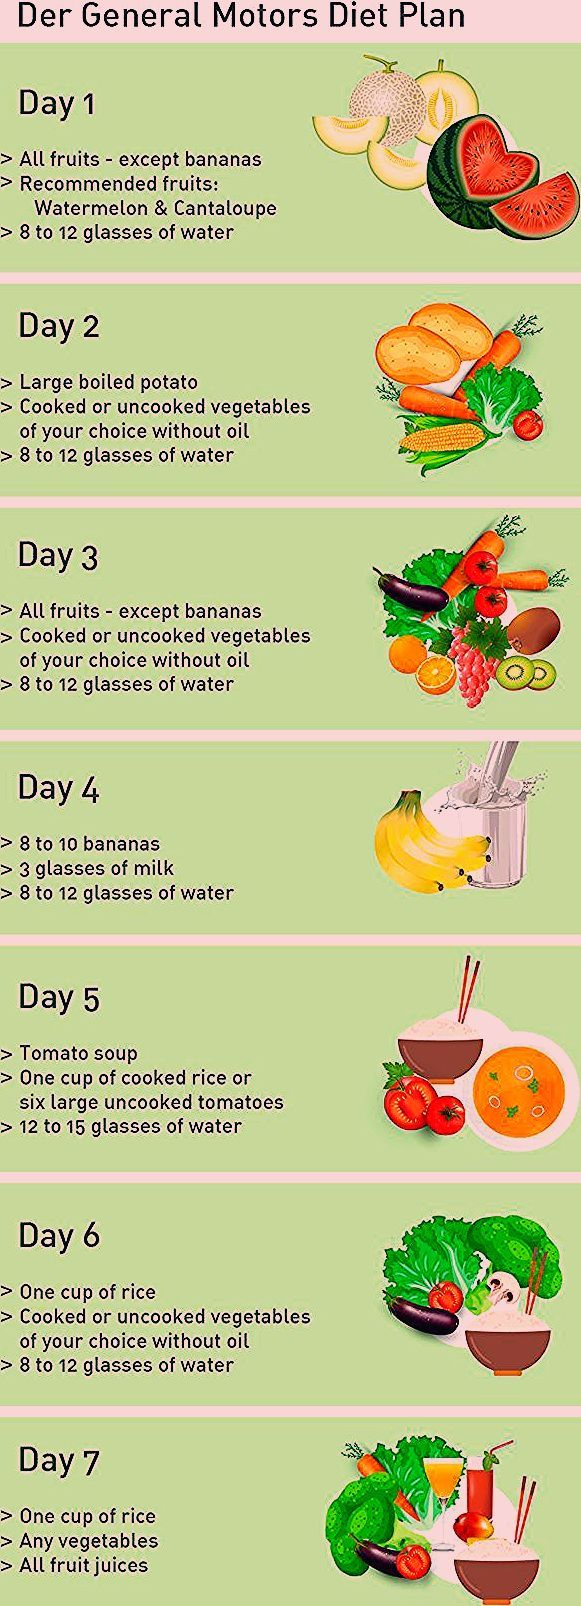 The General Motors Diet Plan is a kind of detox cure. It is based on different ... - Gesundheit und...